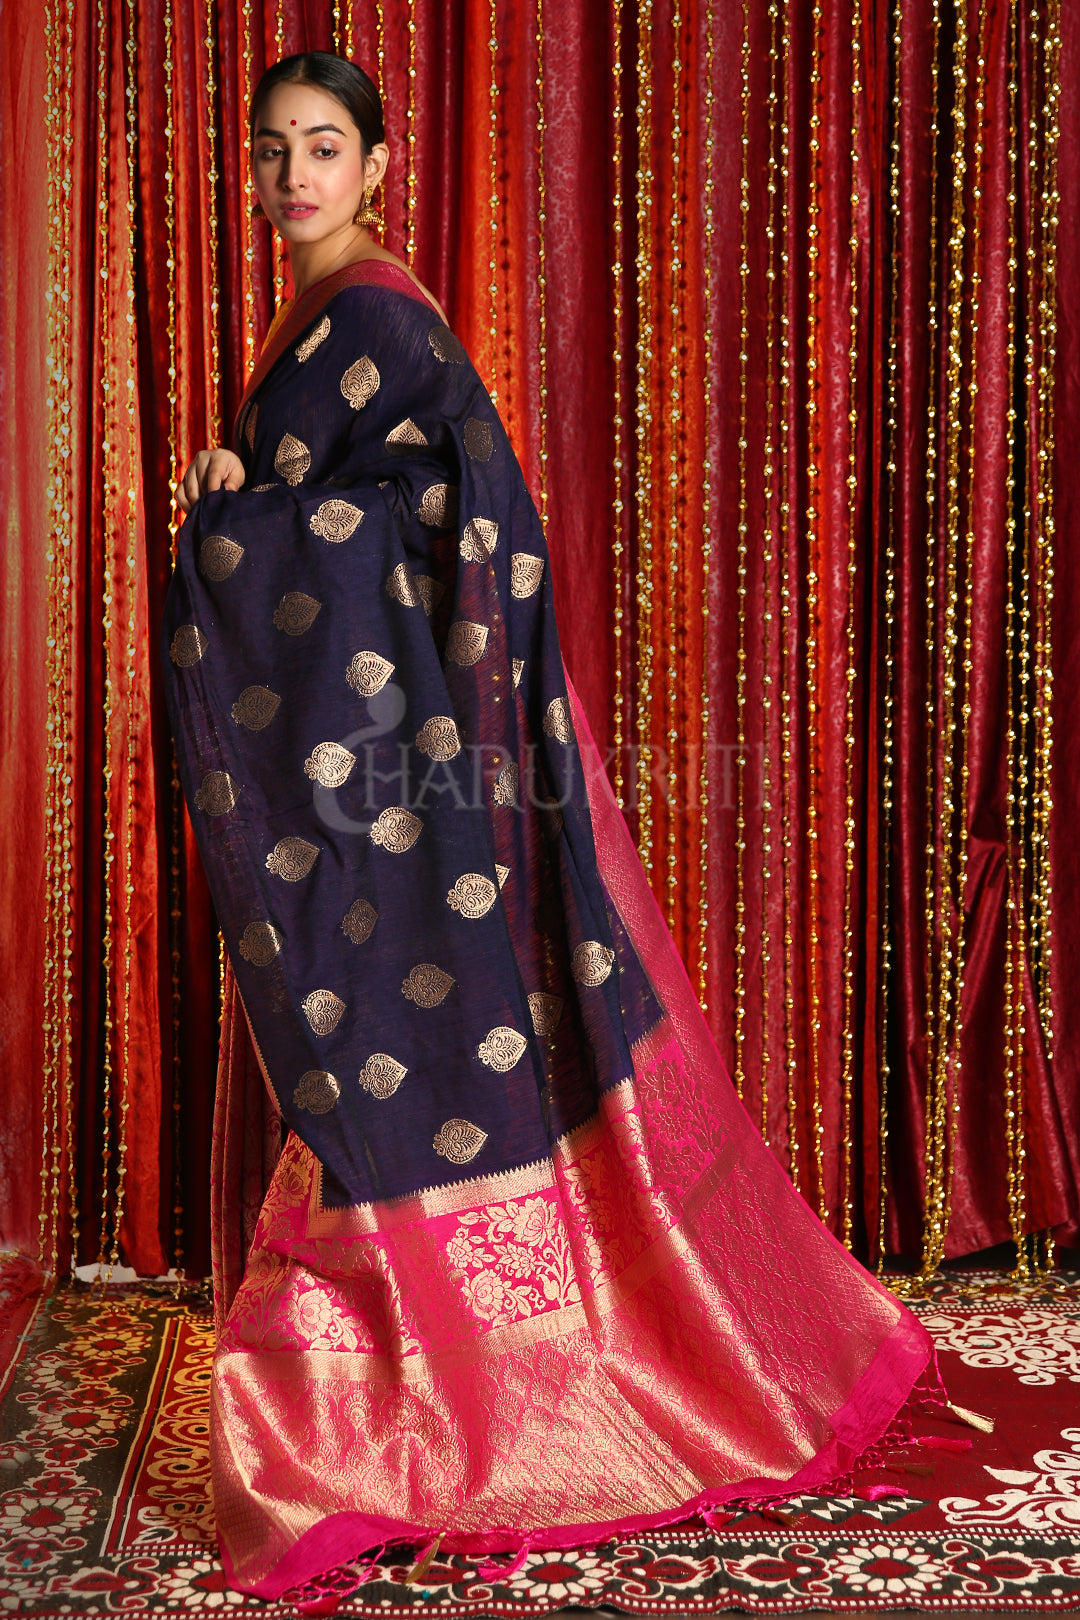 MIDNIGHT BLUE AND PINK HALF & HALF BANARASI SAREE WITH BROCADE DESIGN